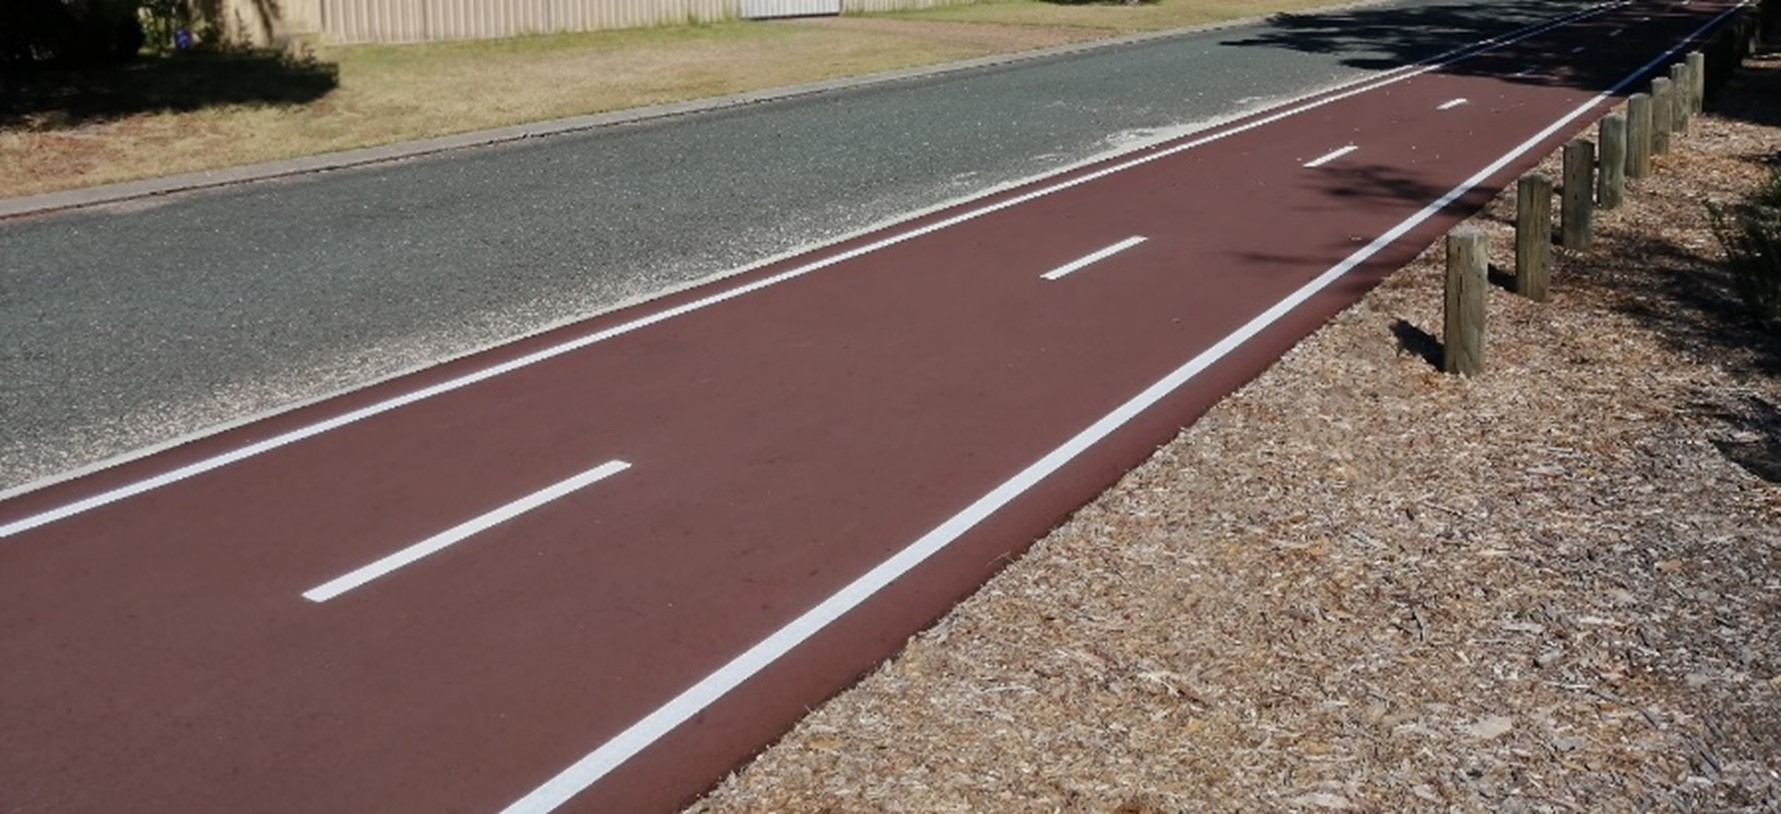 Example of the red asphalt shared path. (Photo of Mack Place, High Wycombe).